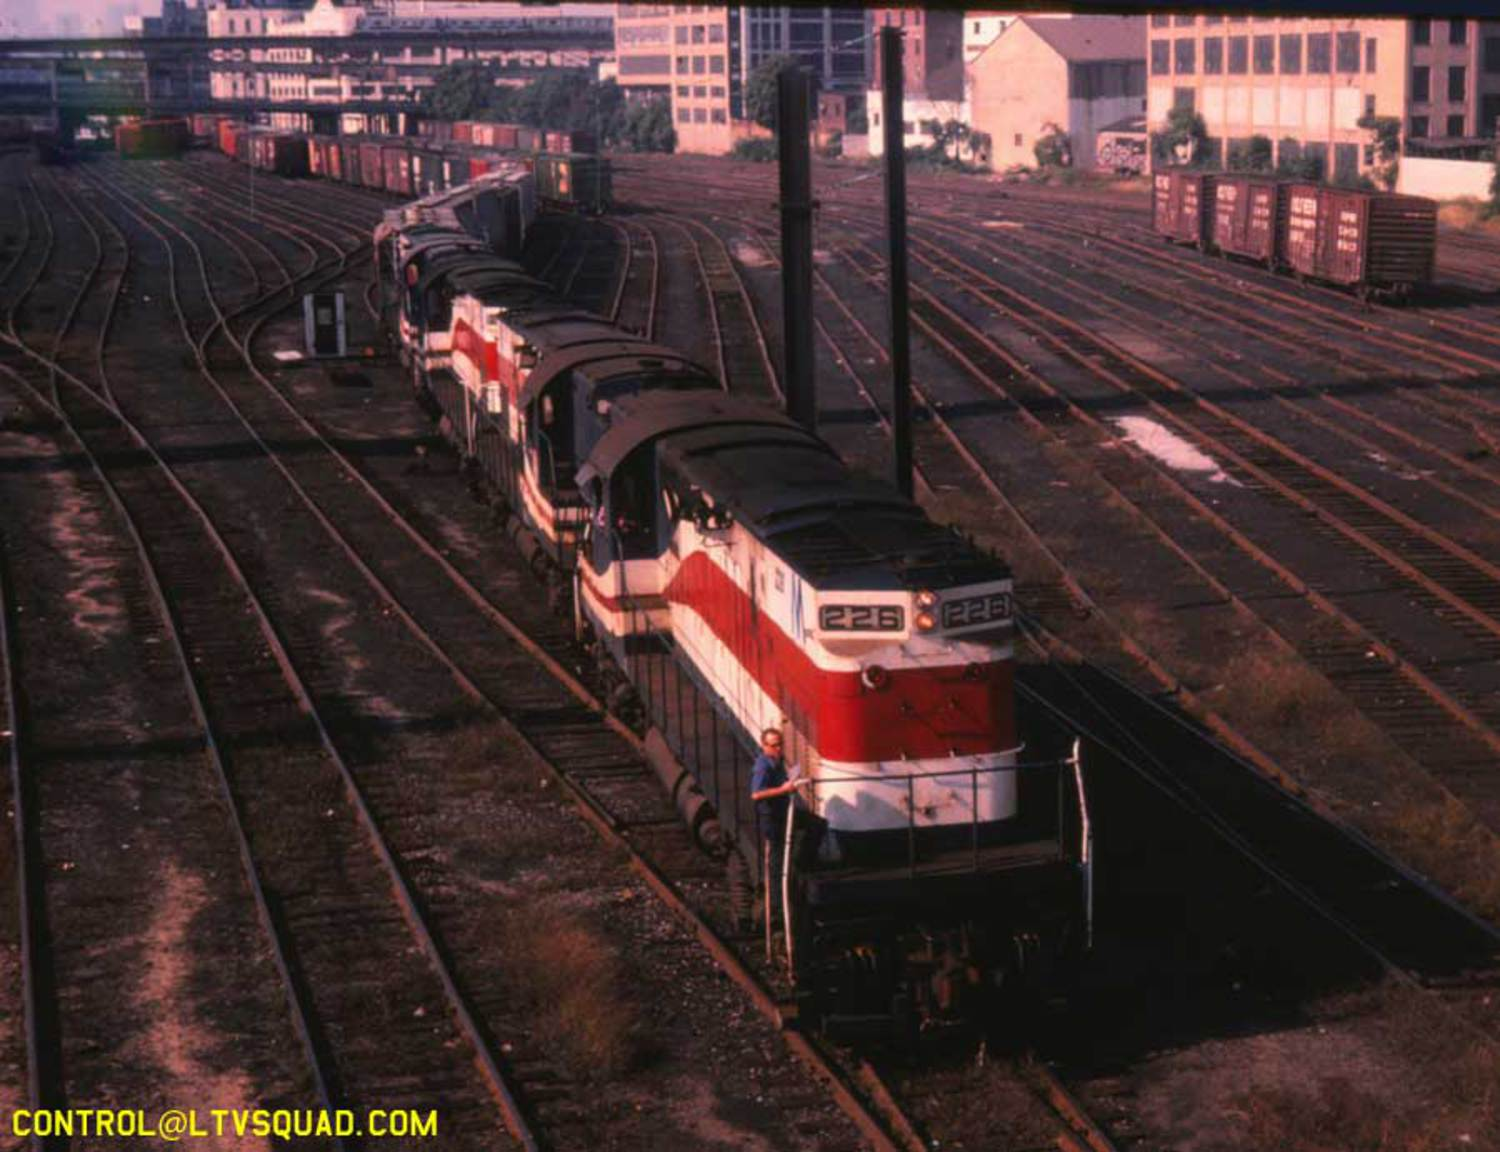 "This is a 1982 photo of a long inbound freight LIRR freight train arriving in 'Yard A' at sunnyside, as seen from the Honeywell Avenue bridge. You can see the 7 train and CN West factory in the distance. The train is being lead by 4 ""C420"" freight locomotives built by the American Locomotive Company, located in upstate NY – they're still painted in a red white & blue paint job applied to many LIRR locomotives in celebration of the 1976 US bicentennial."